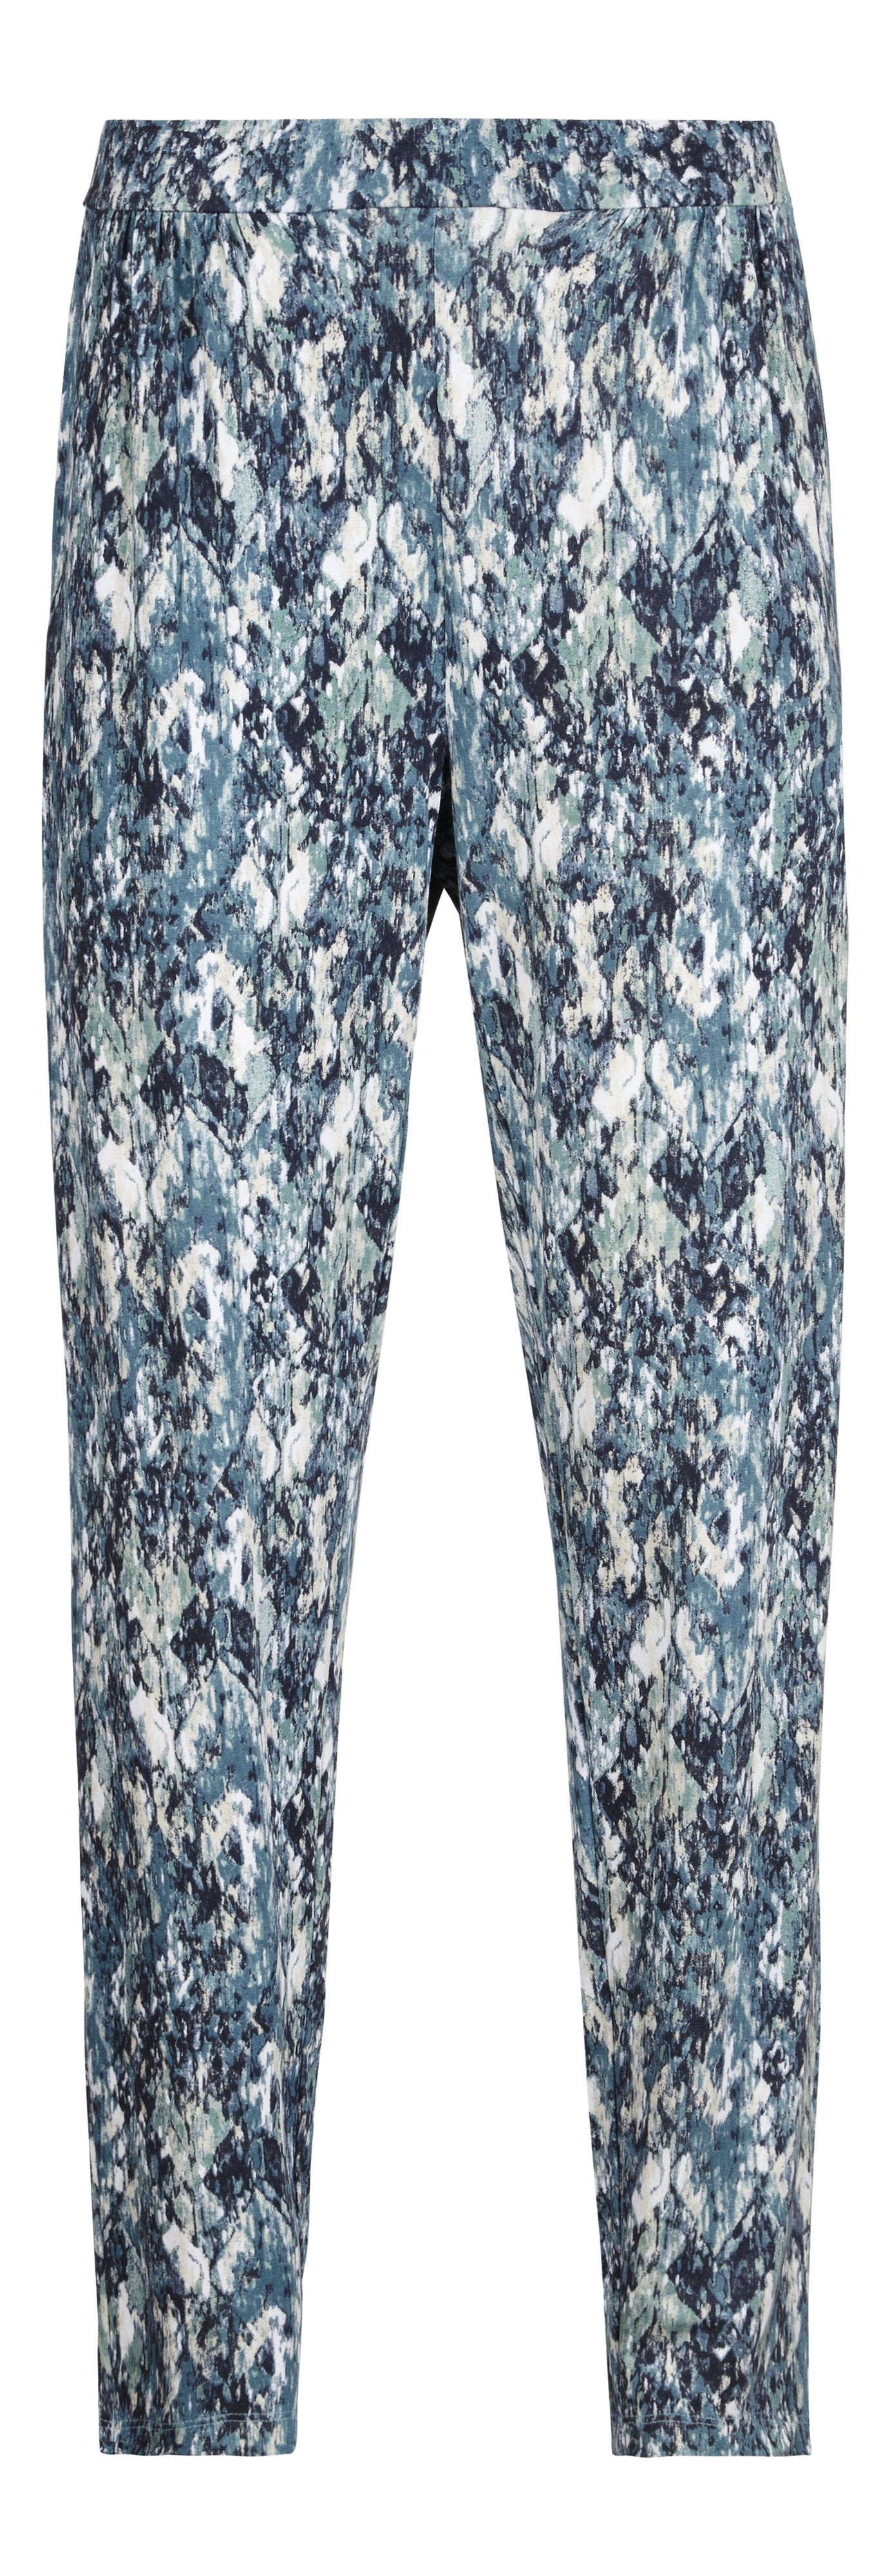 Jersey printed trousers